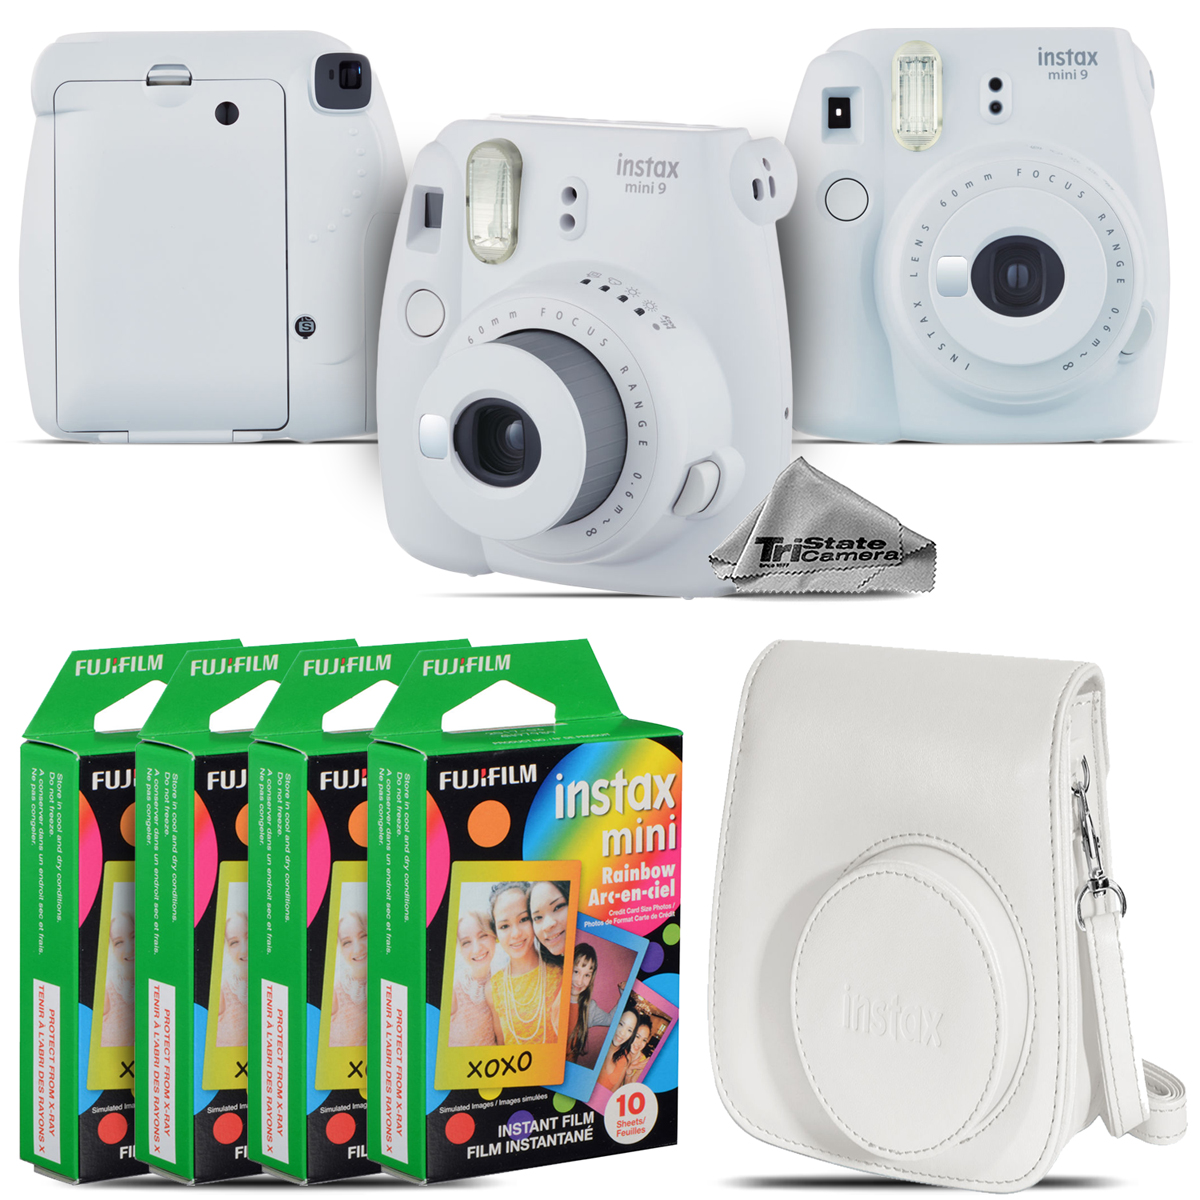 FujiFilm instax mini 9 Film Camera (Smokey White) + White Case 40 Films Kit by Tri State Camera